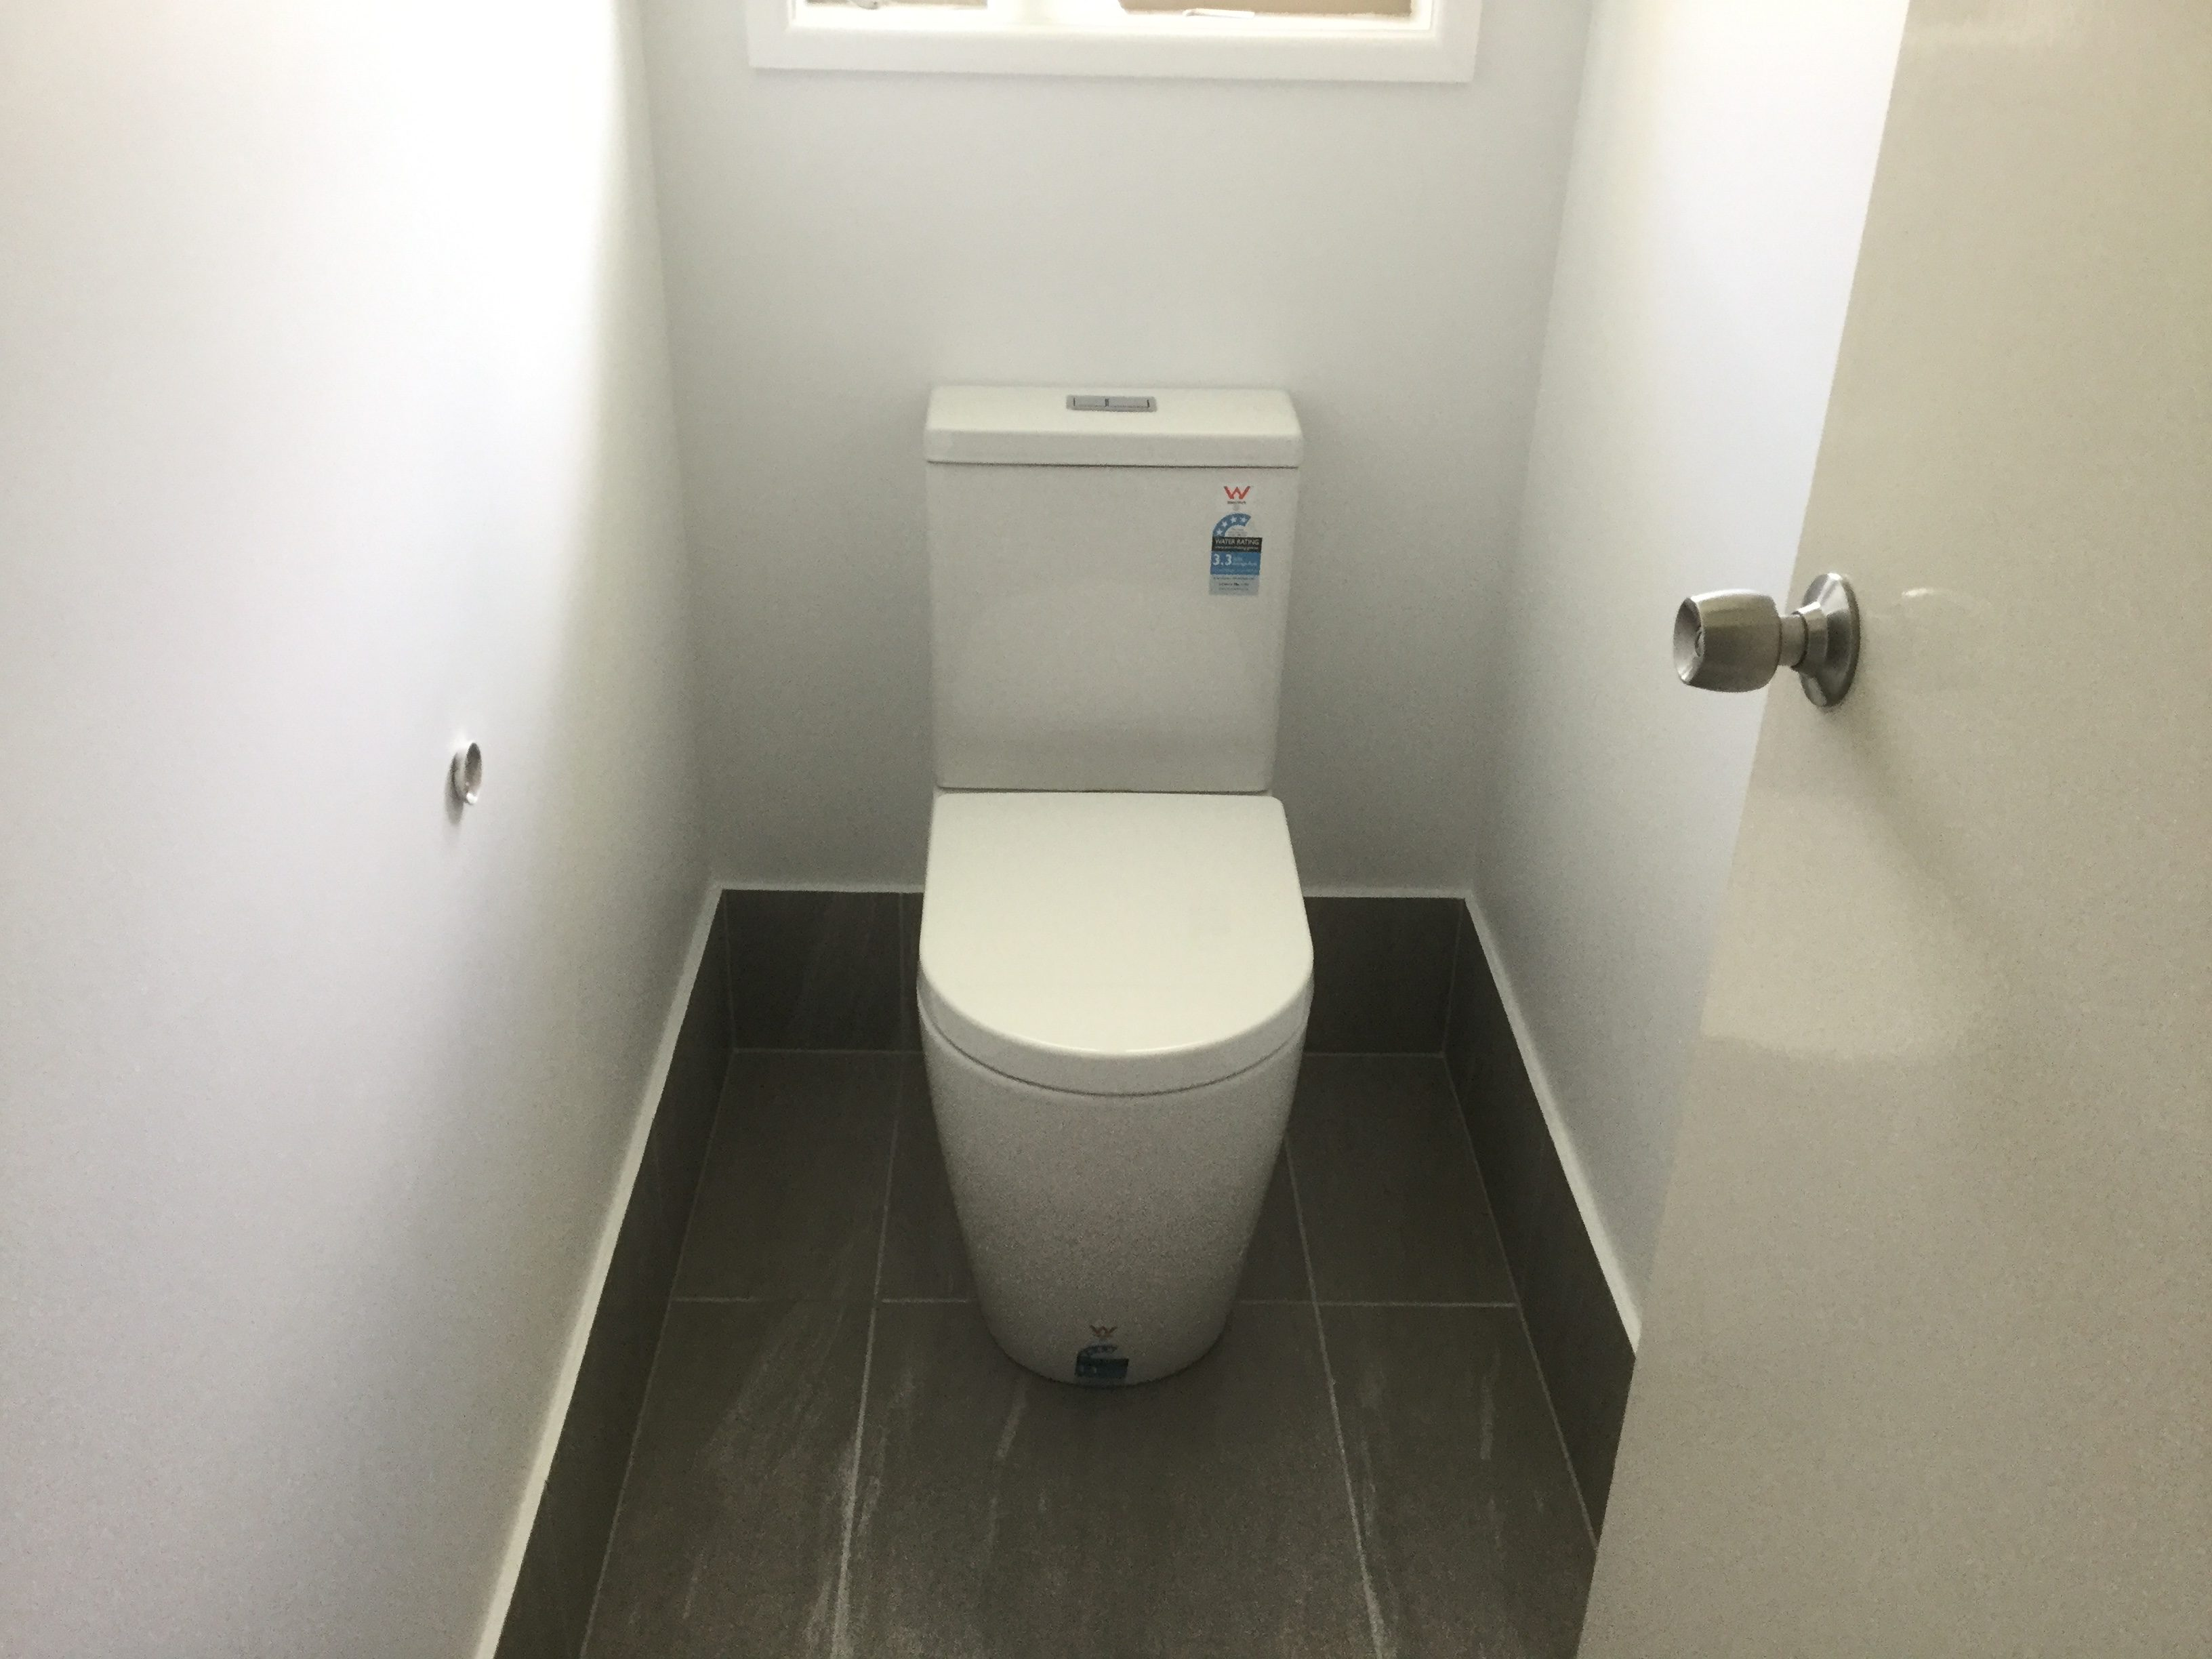 Back to Wall Toilet 4